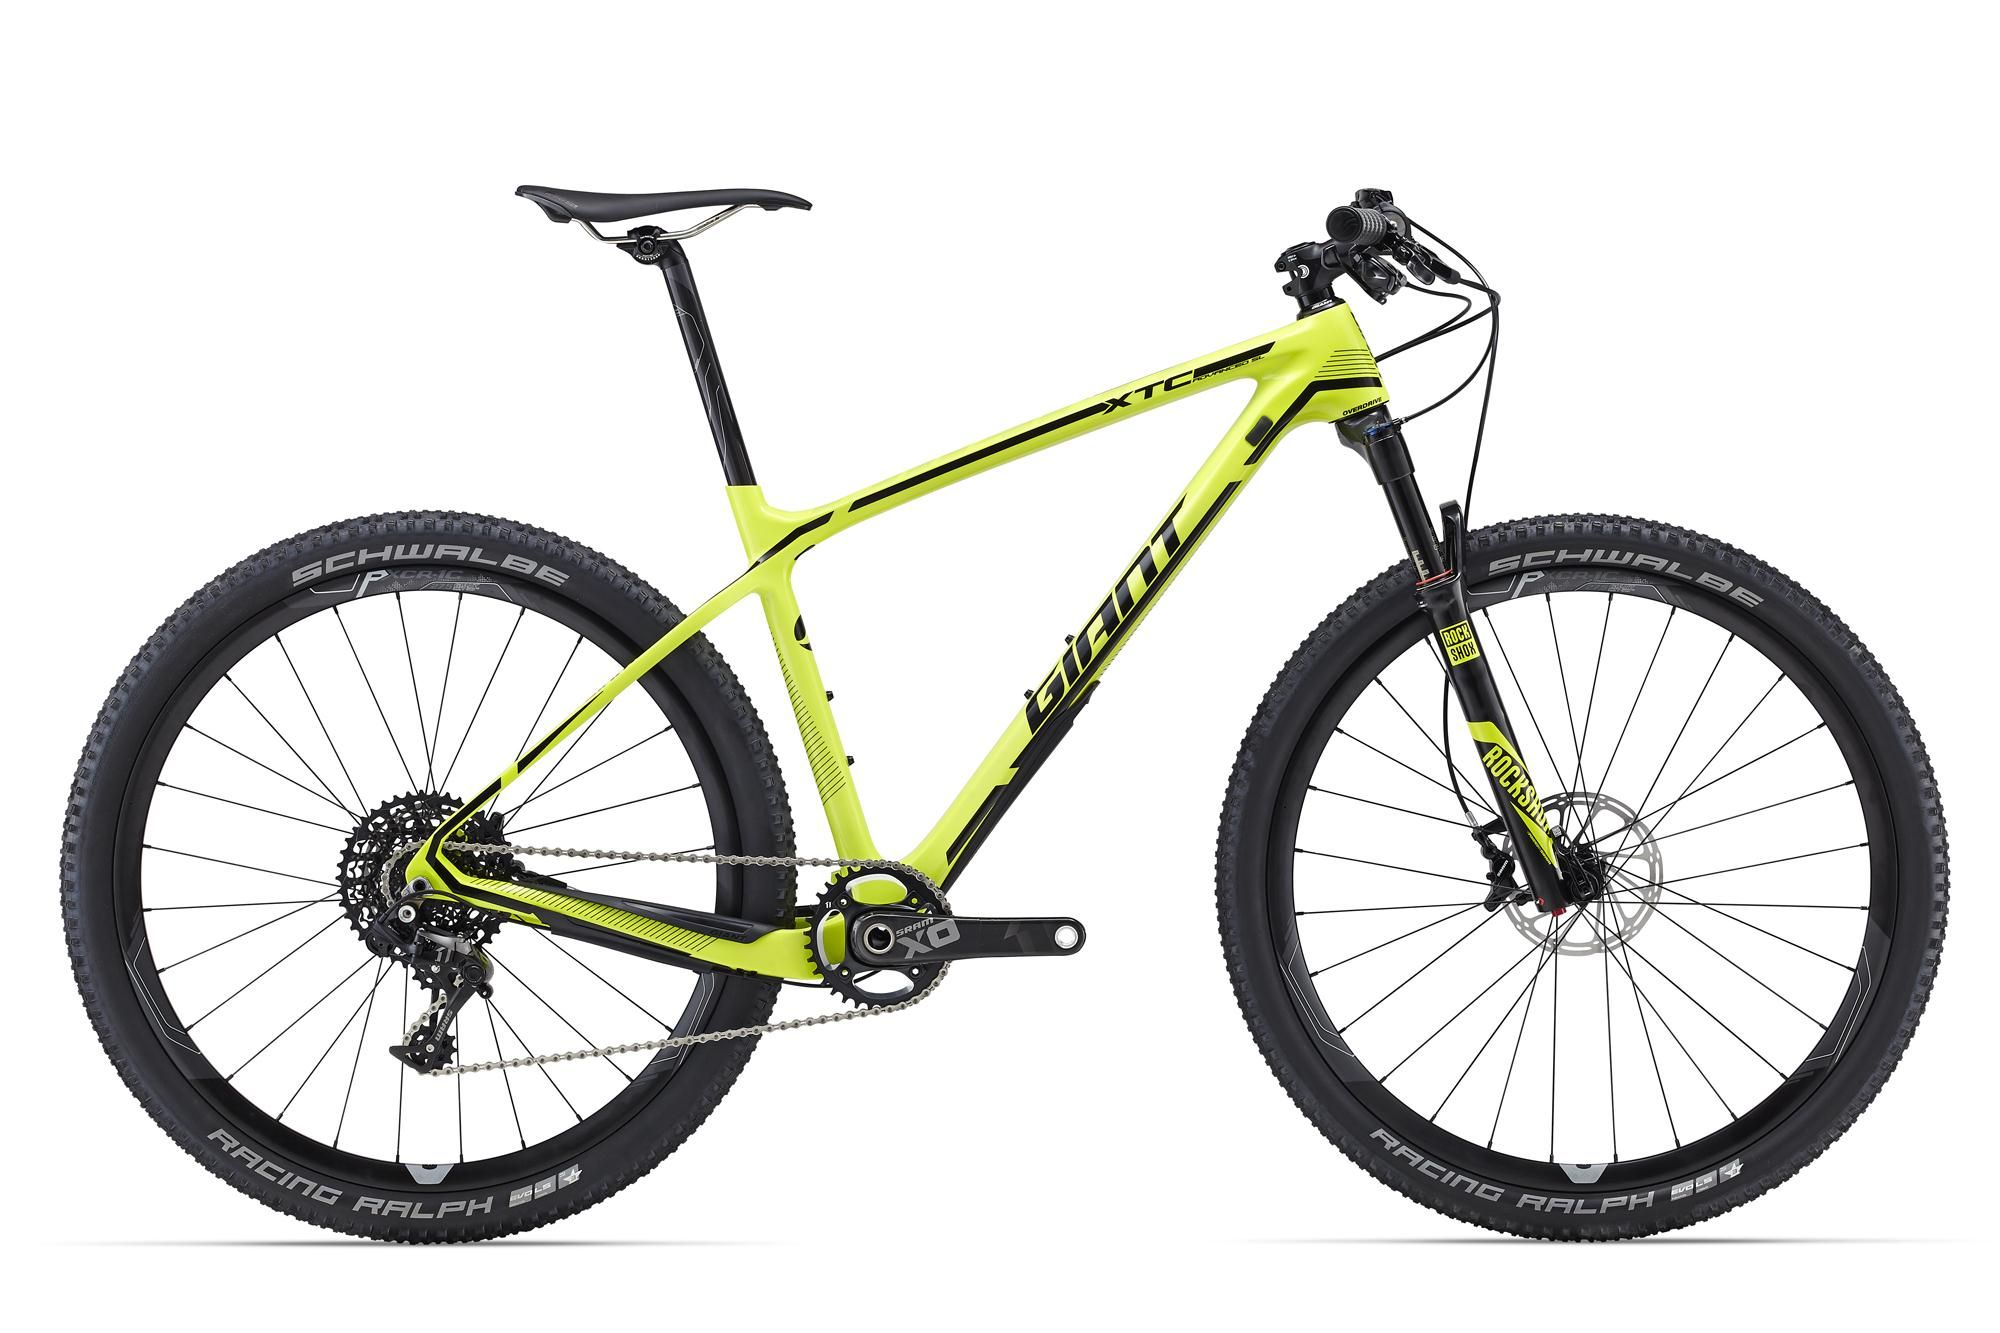 Велосипед Giant XtC Advanced SL 27.5 1 2016 велосипед giant trinity advanced pro 1 2016